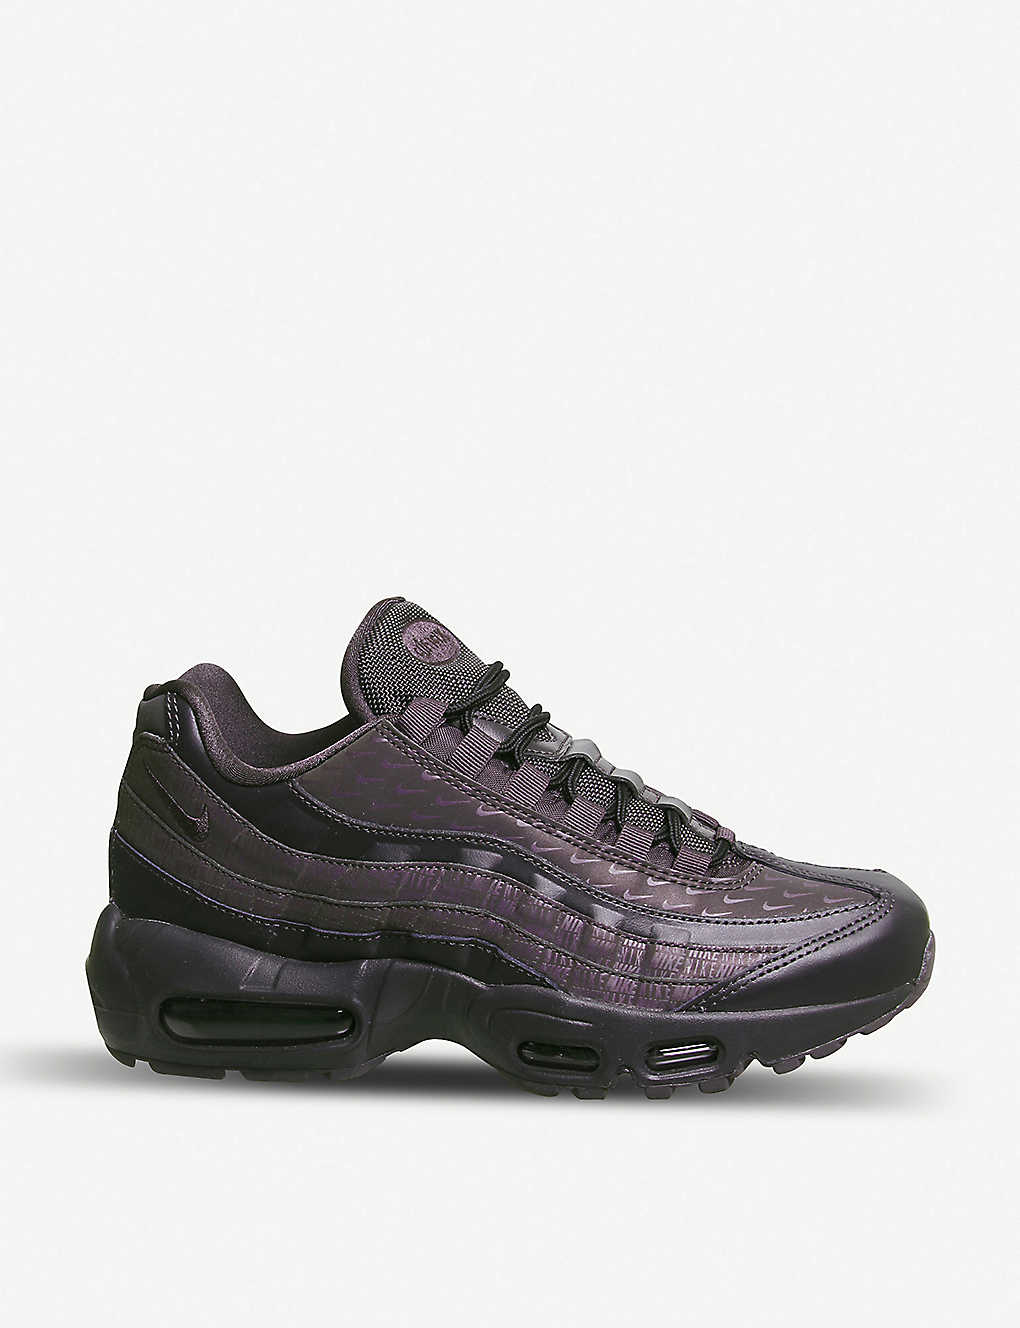 low priced ffb81 43b76 Air Max 95 leather and synthetic trainers